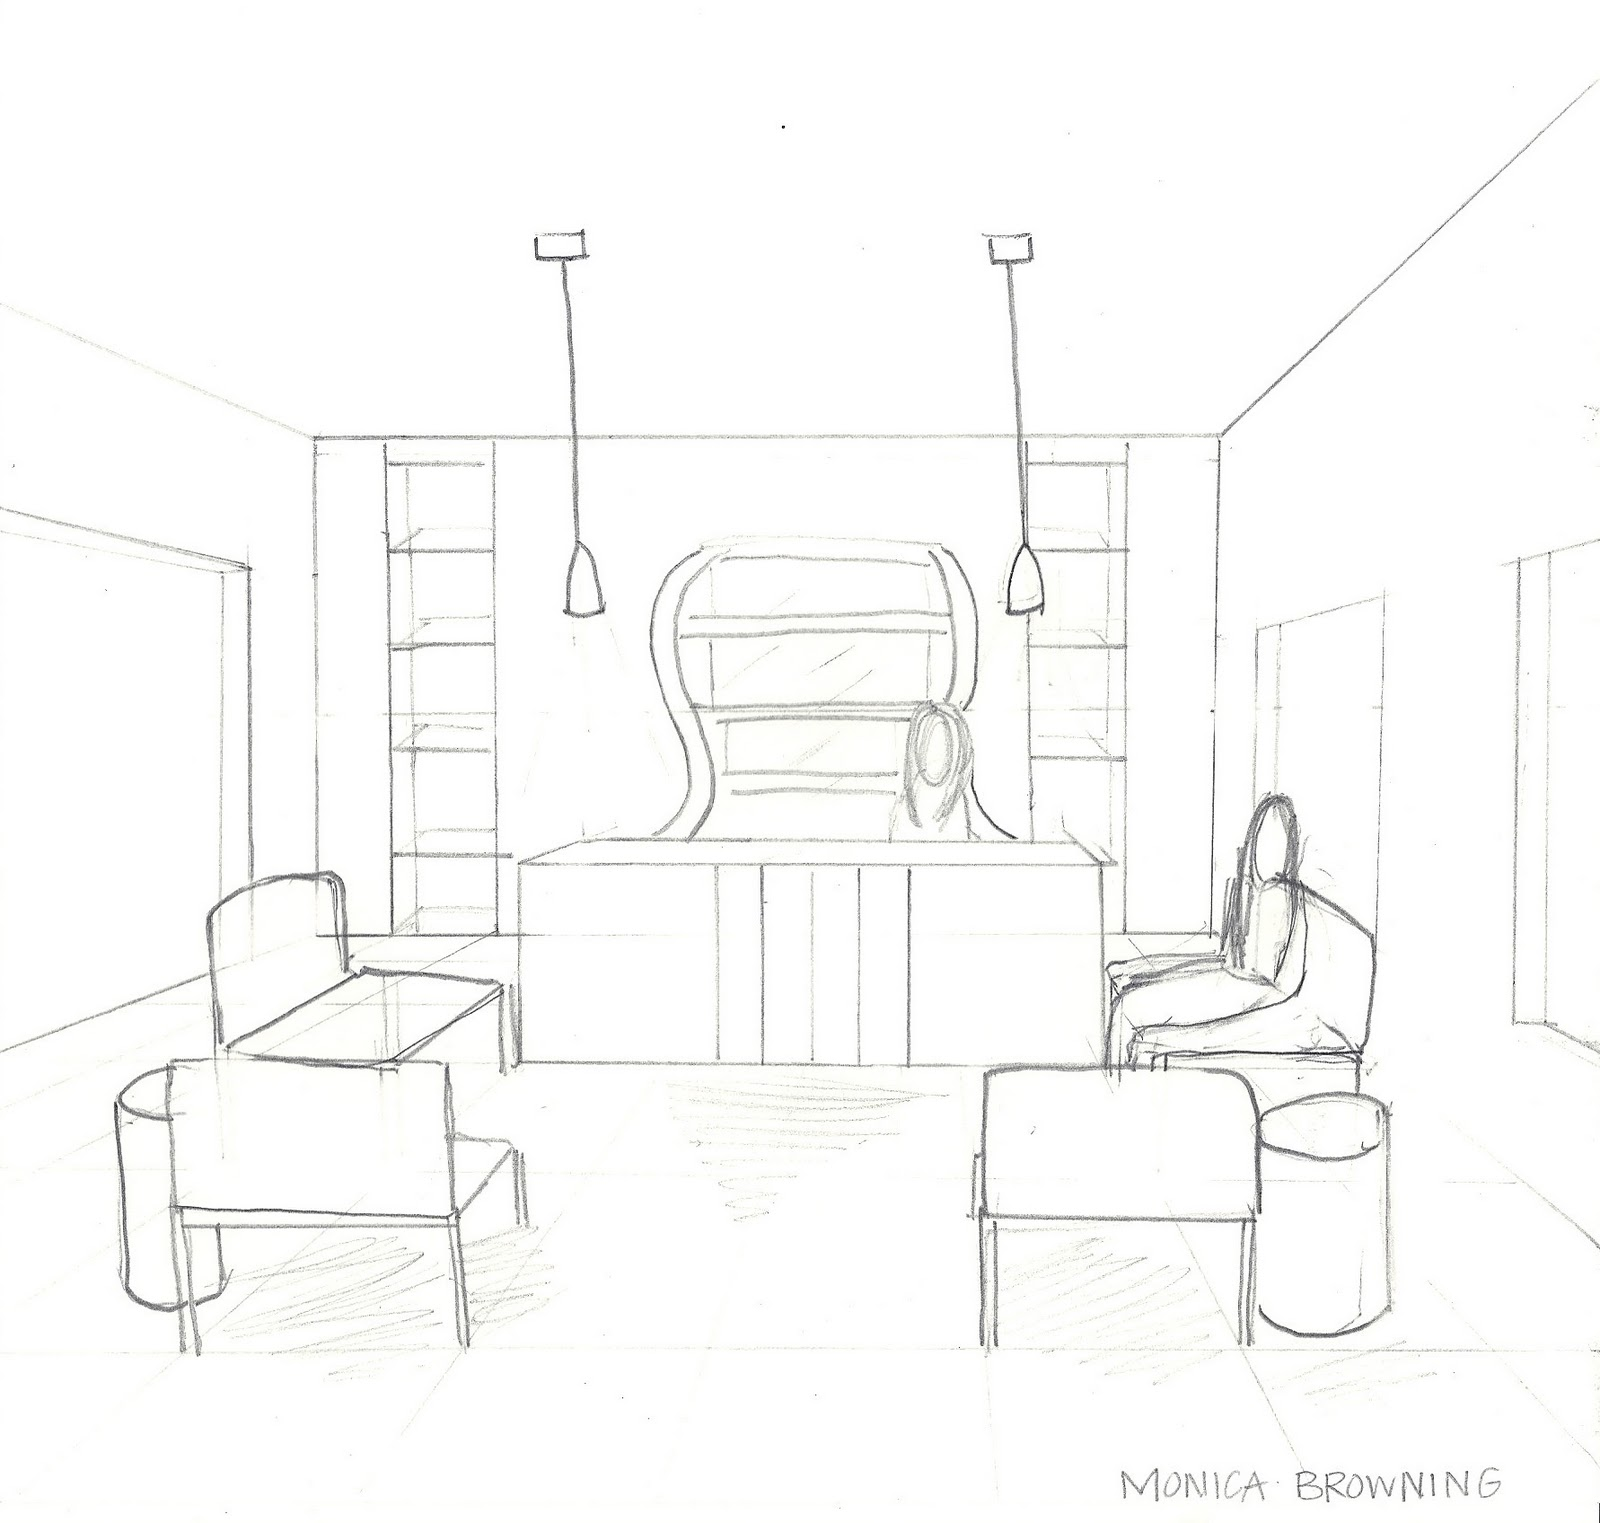 Design by Monica: Reception Space: Sketchup and Color Studies